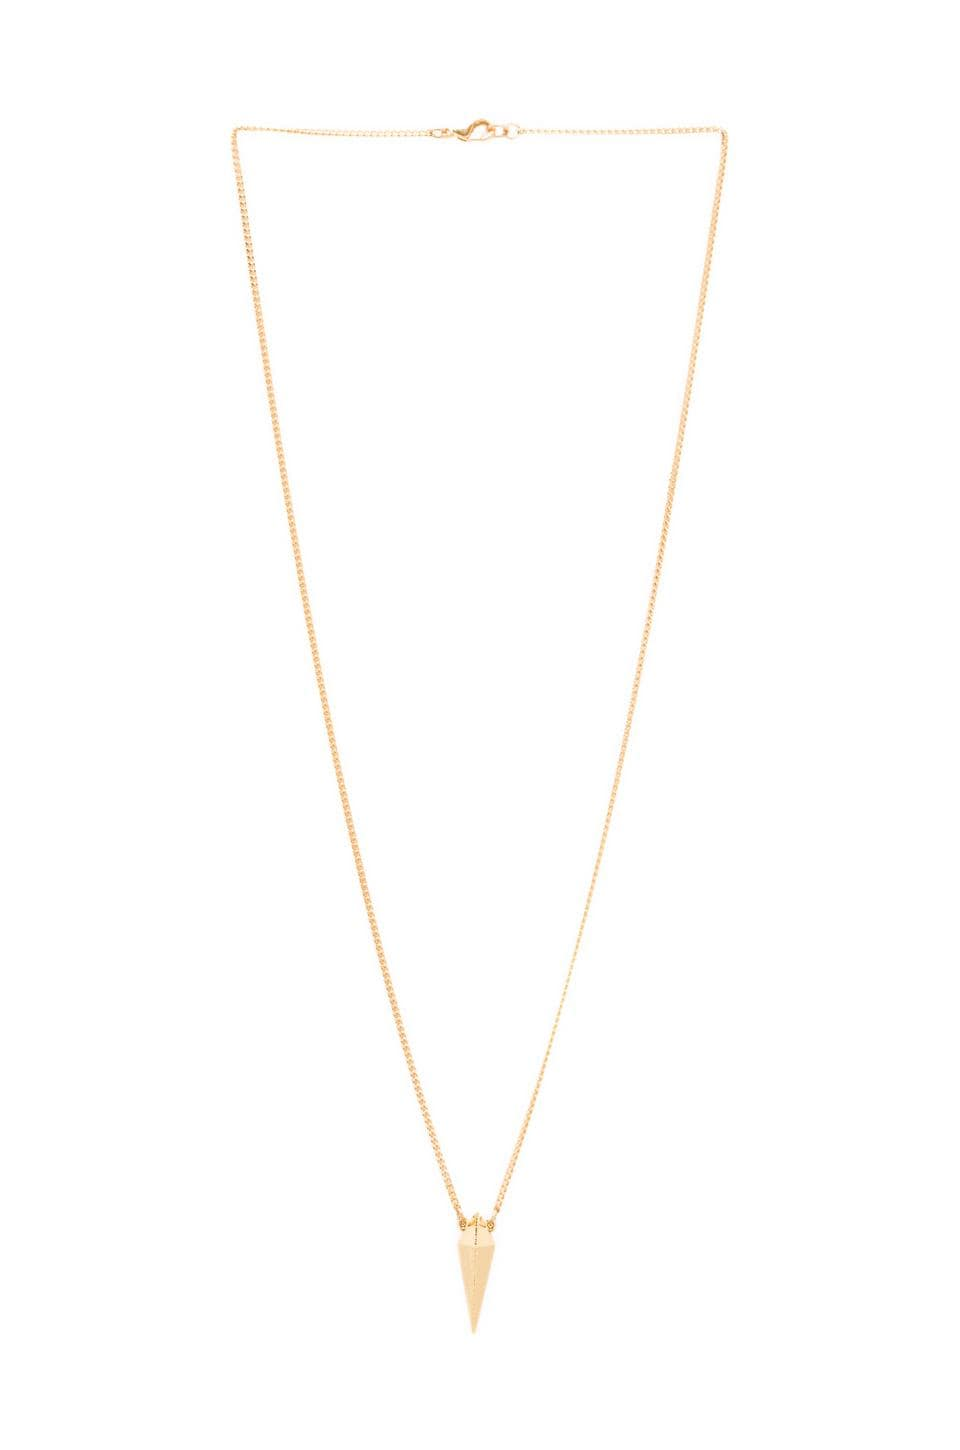 Luv AJ The Spike Charm Necklace in Gold